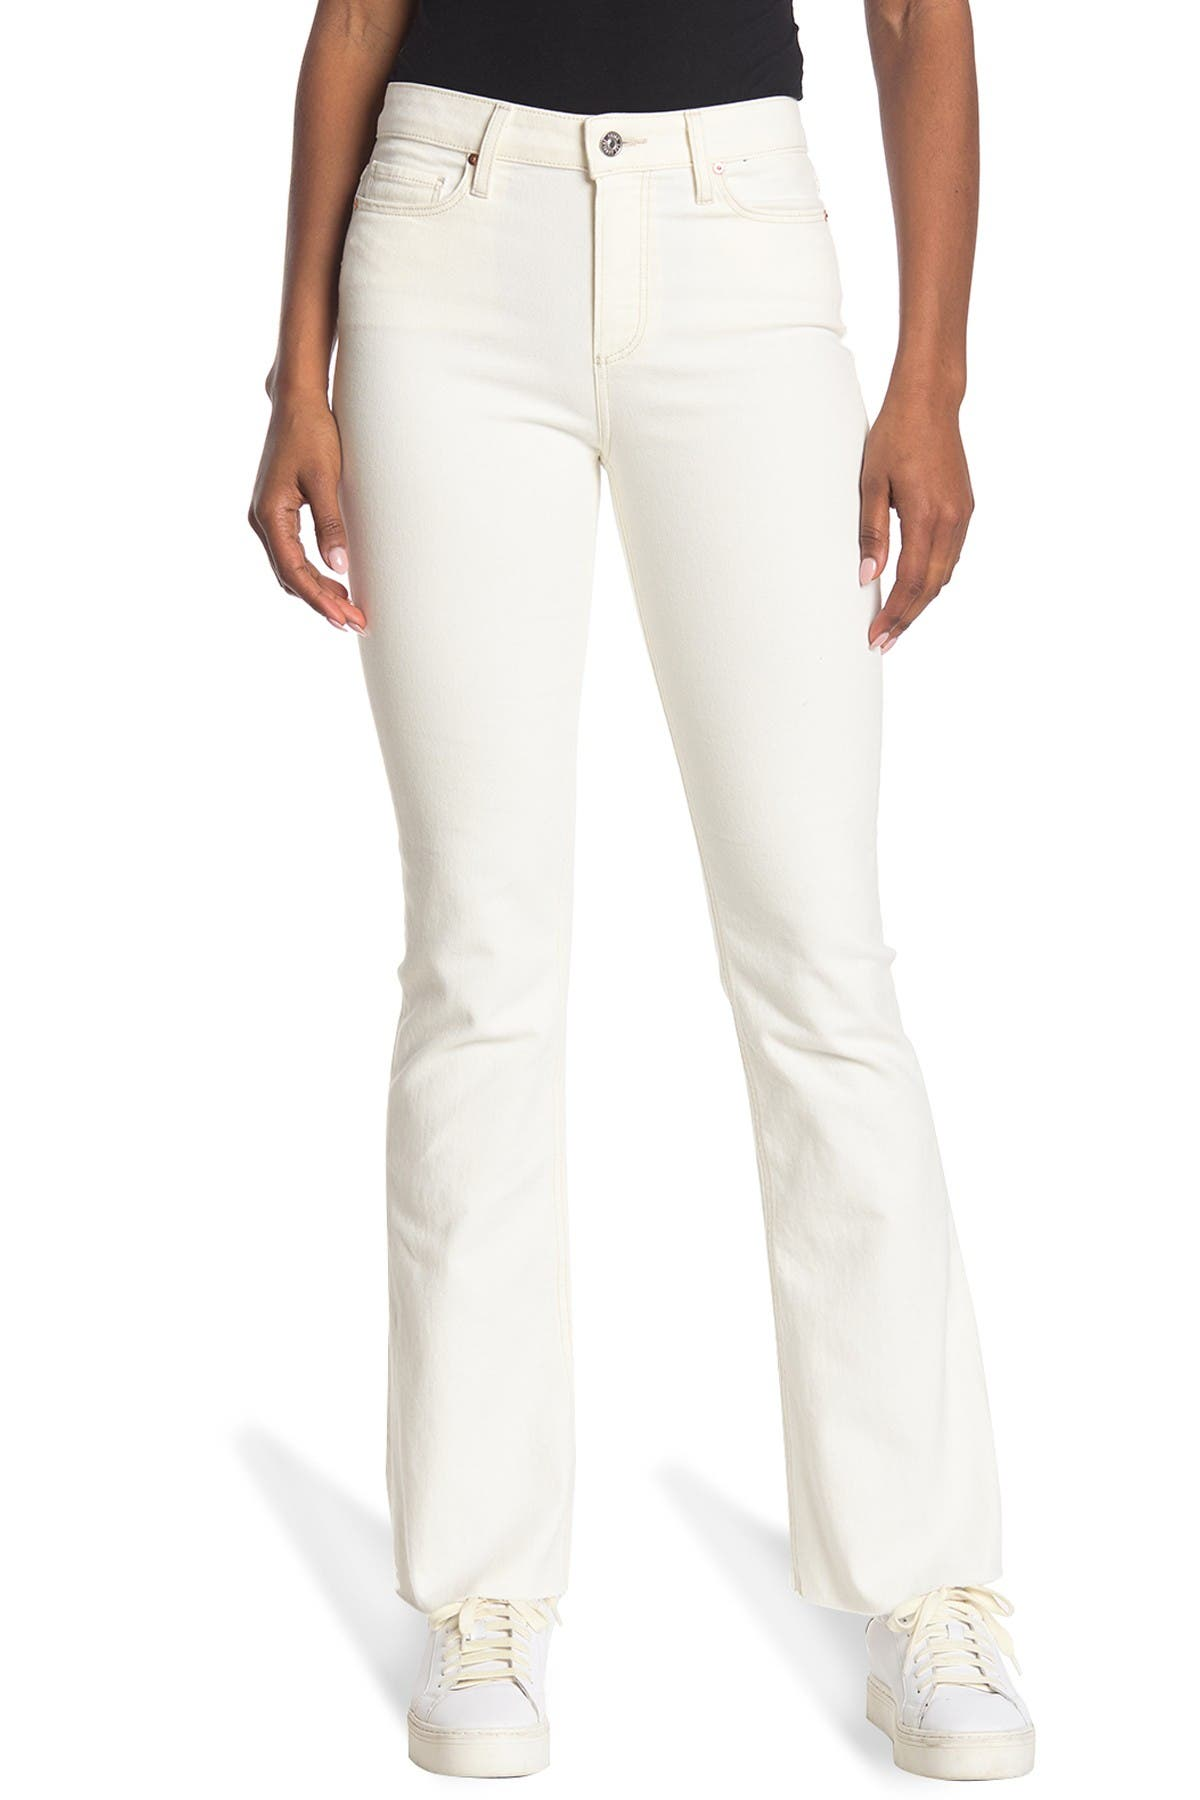 Image of PAIGE Laurel Canyon High Rise Bootcut Jeans